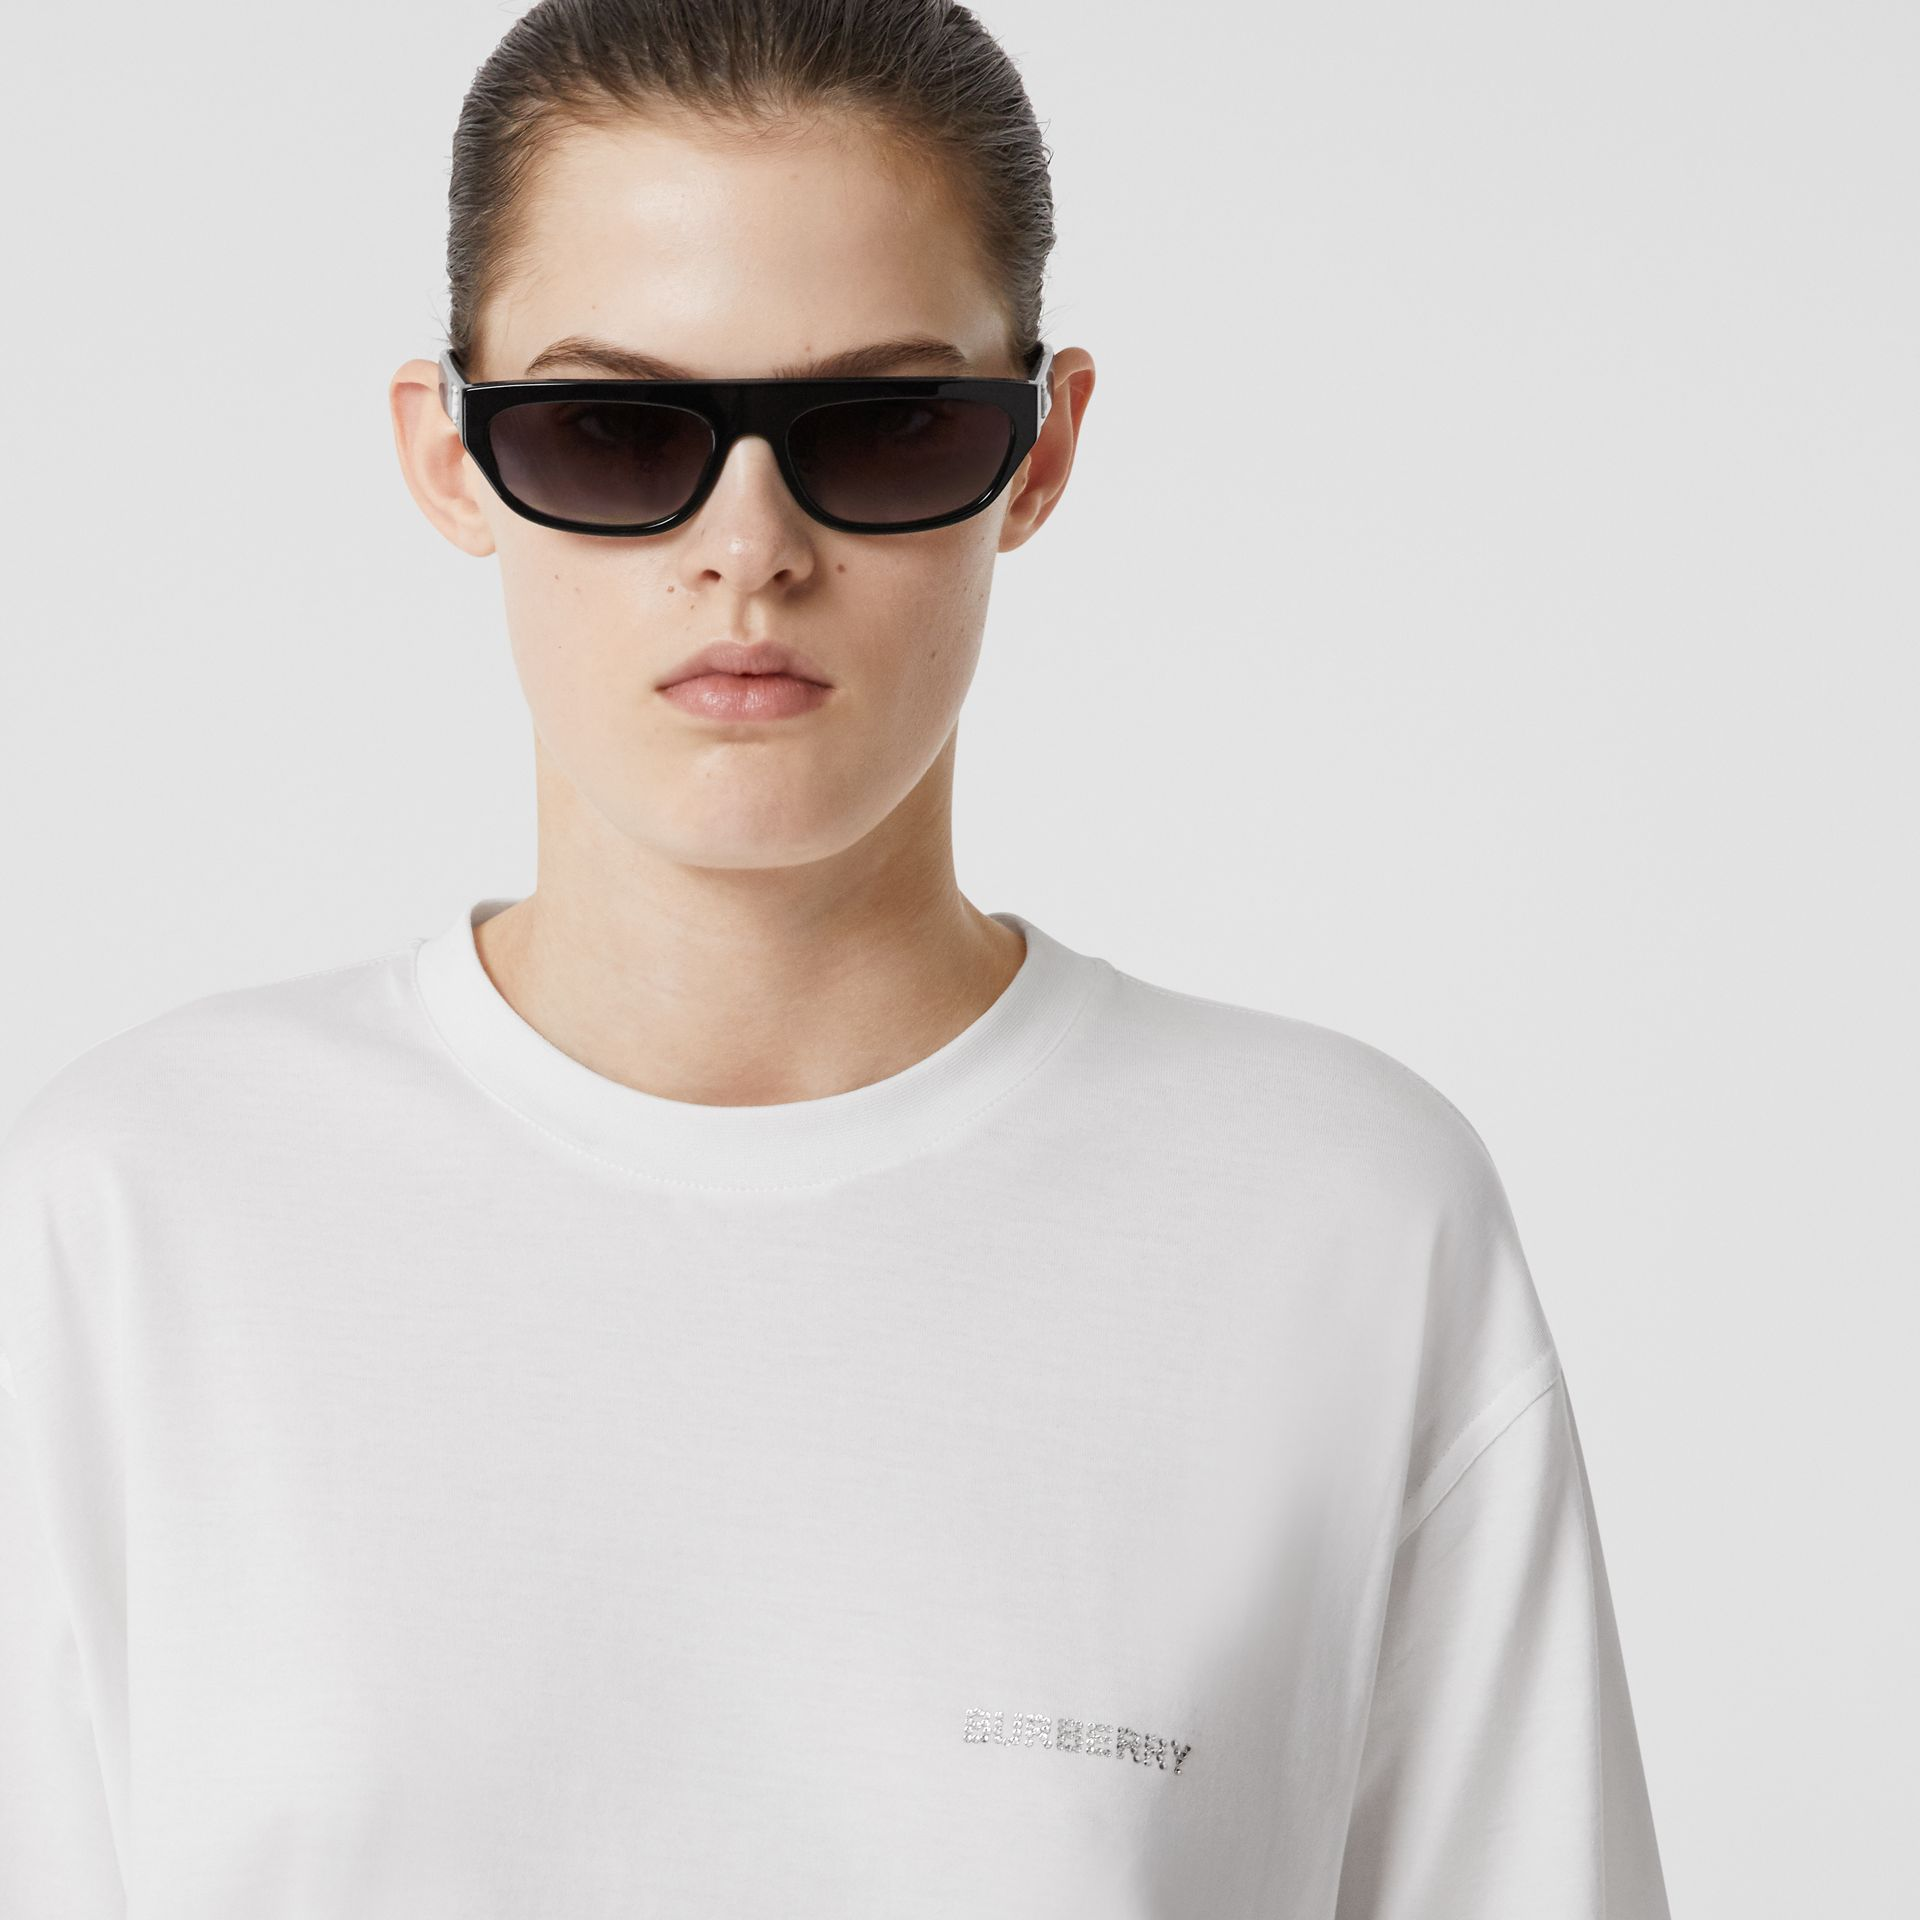 Crystal Monogram Motif Cotton Oversized T-shirt in White - Women | Burberry - gallery image 1